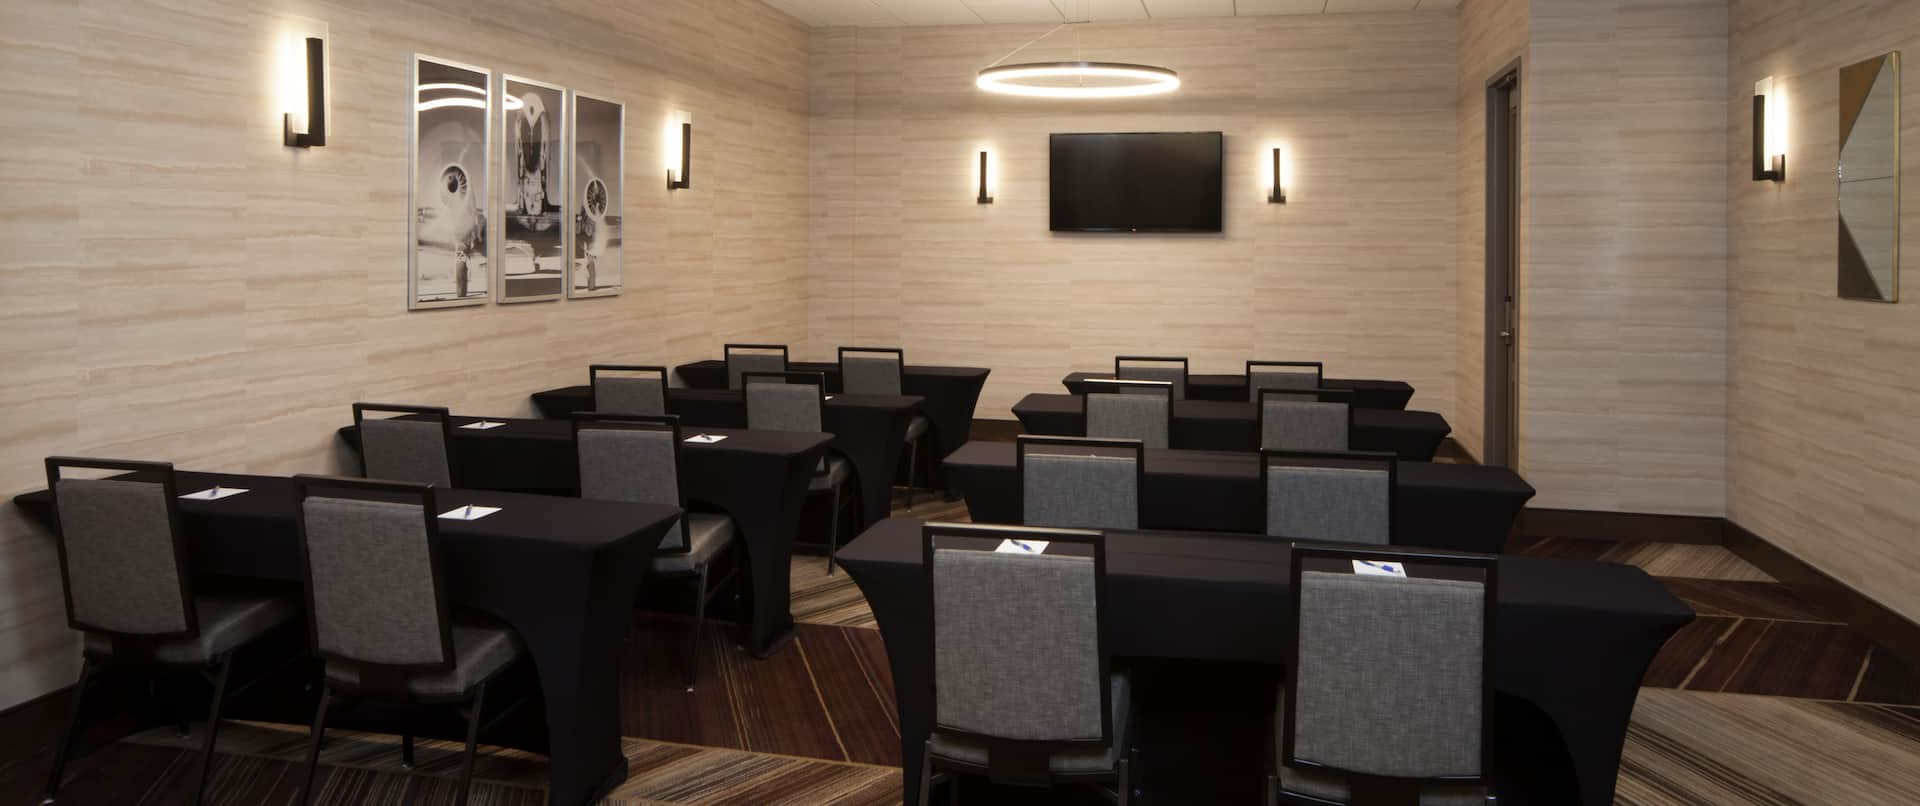 Meeting Room With Classroom Style Seating for 16 People, Wall Art, and TV in Front